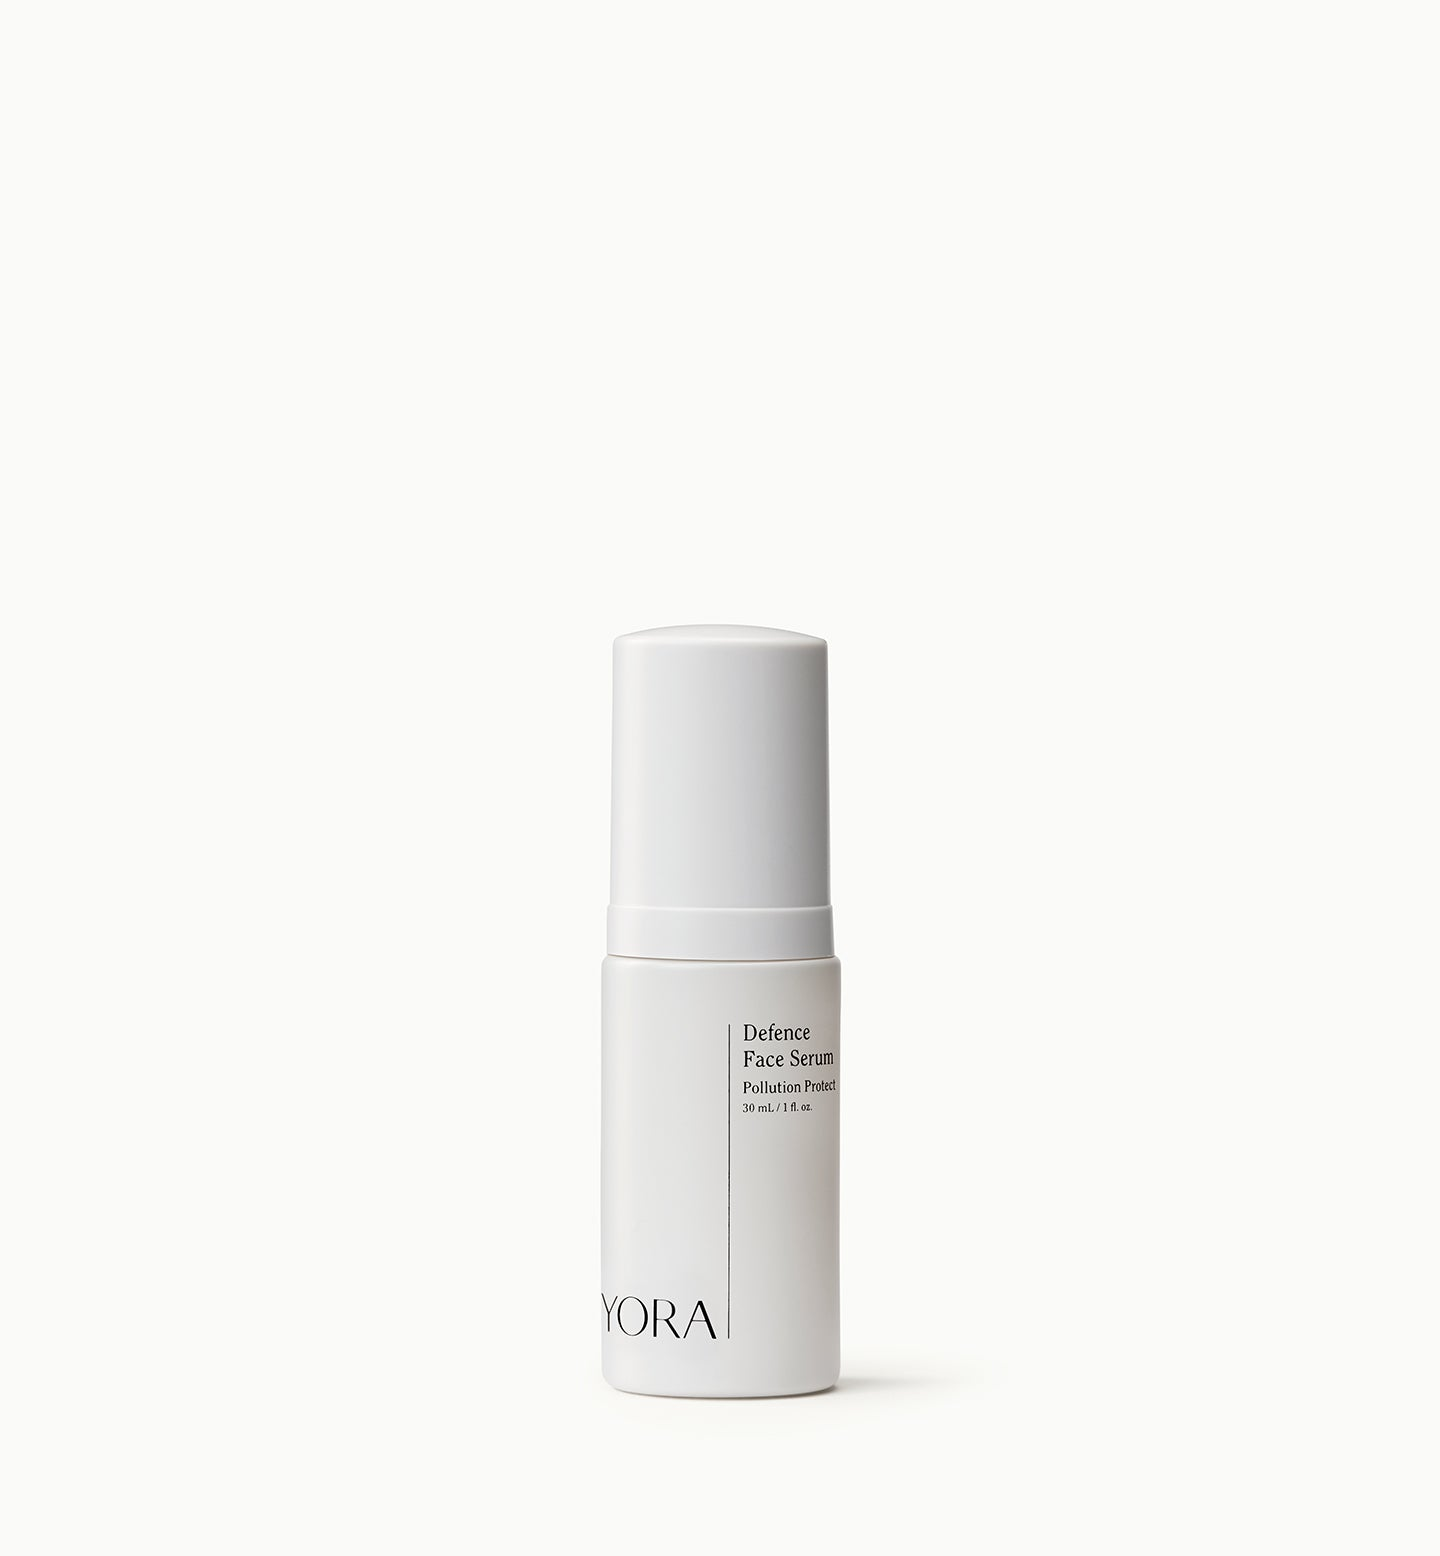 Defence Face Serum - Front